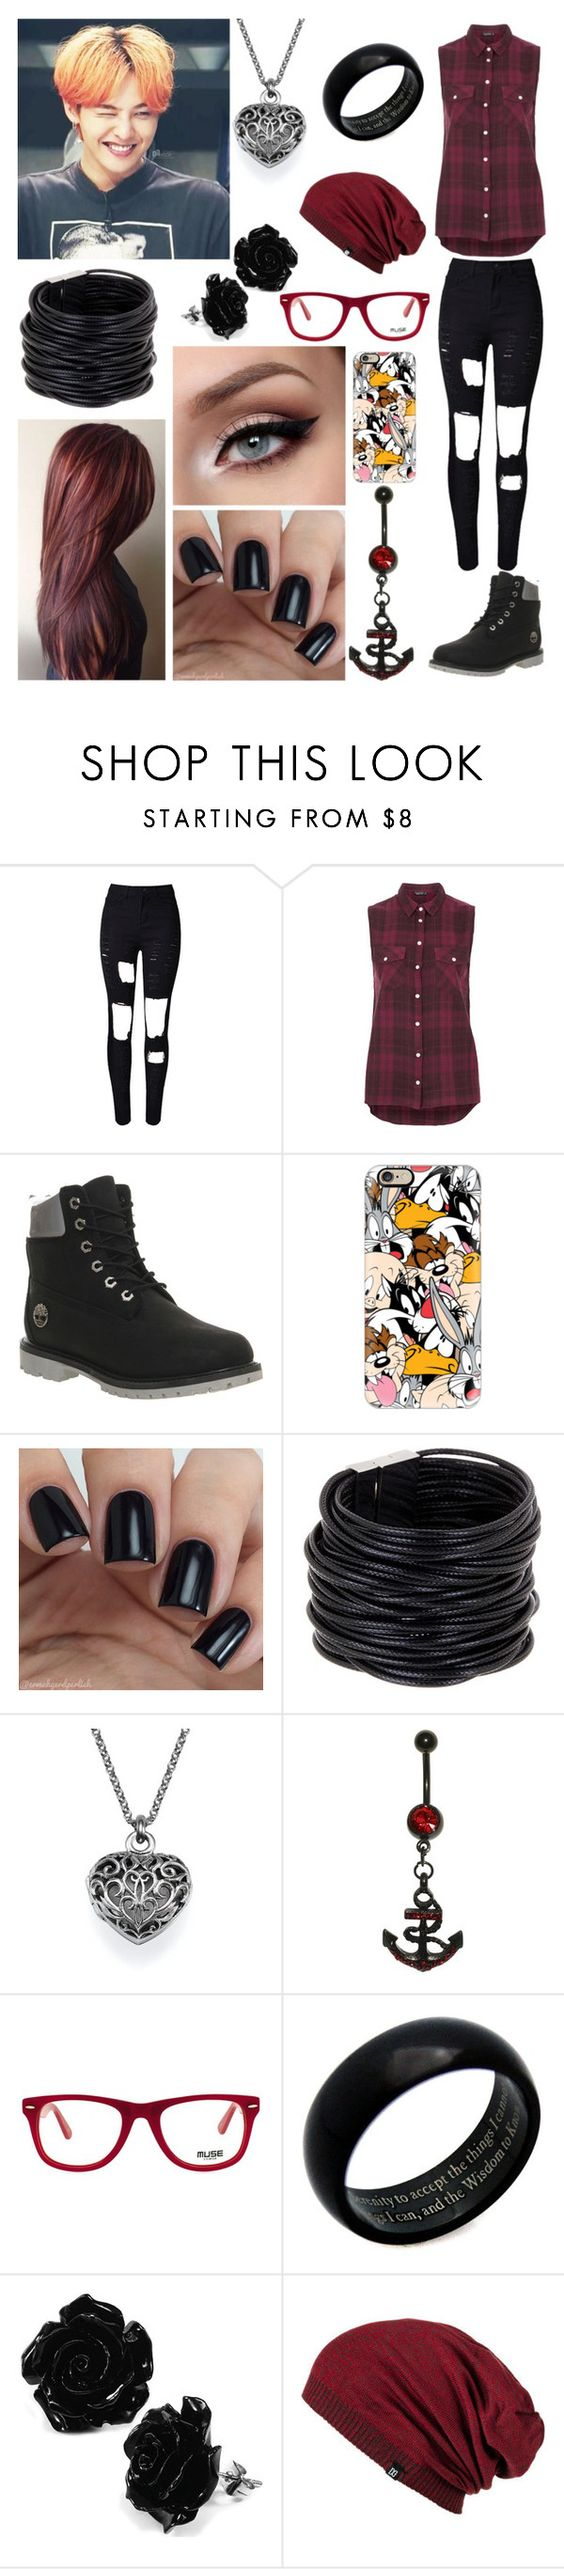 """""""Hangin with G-Dragon♡"""" by cmarnoldrr ❤ liked on Polyvore featuring WithChic, Topshop, Timberland, Casetify, Saachi, Muse and JewelGlo"""